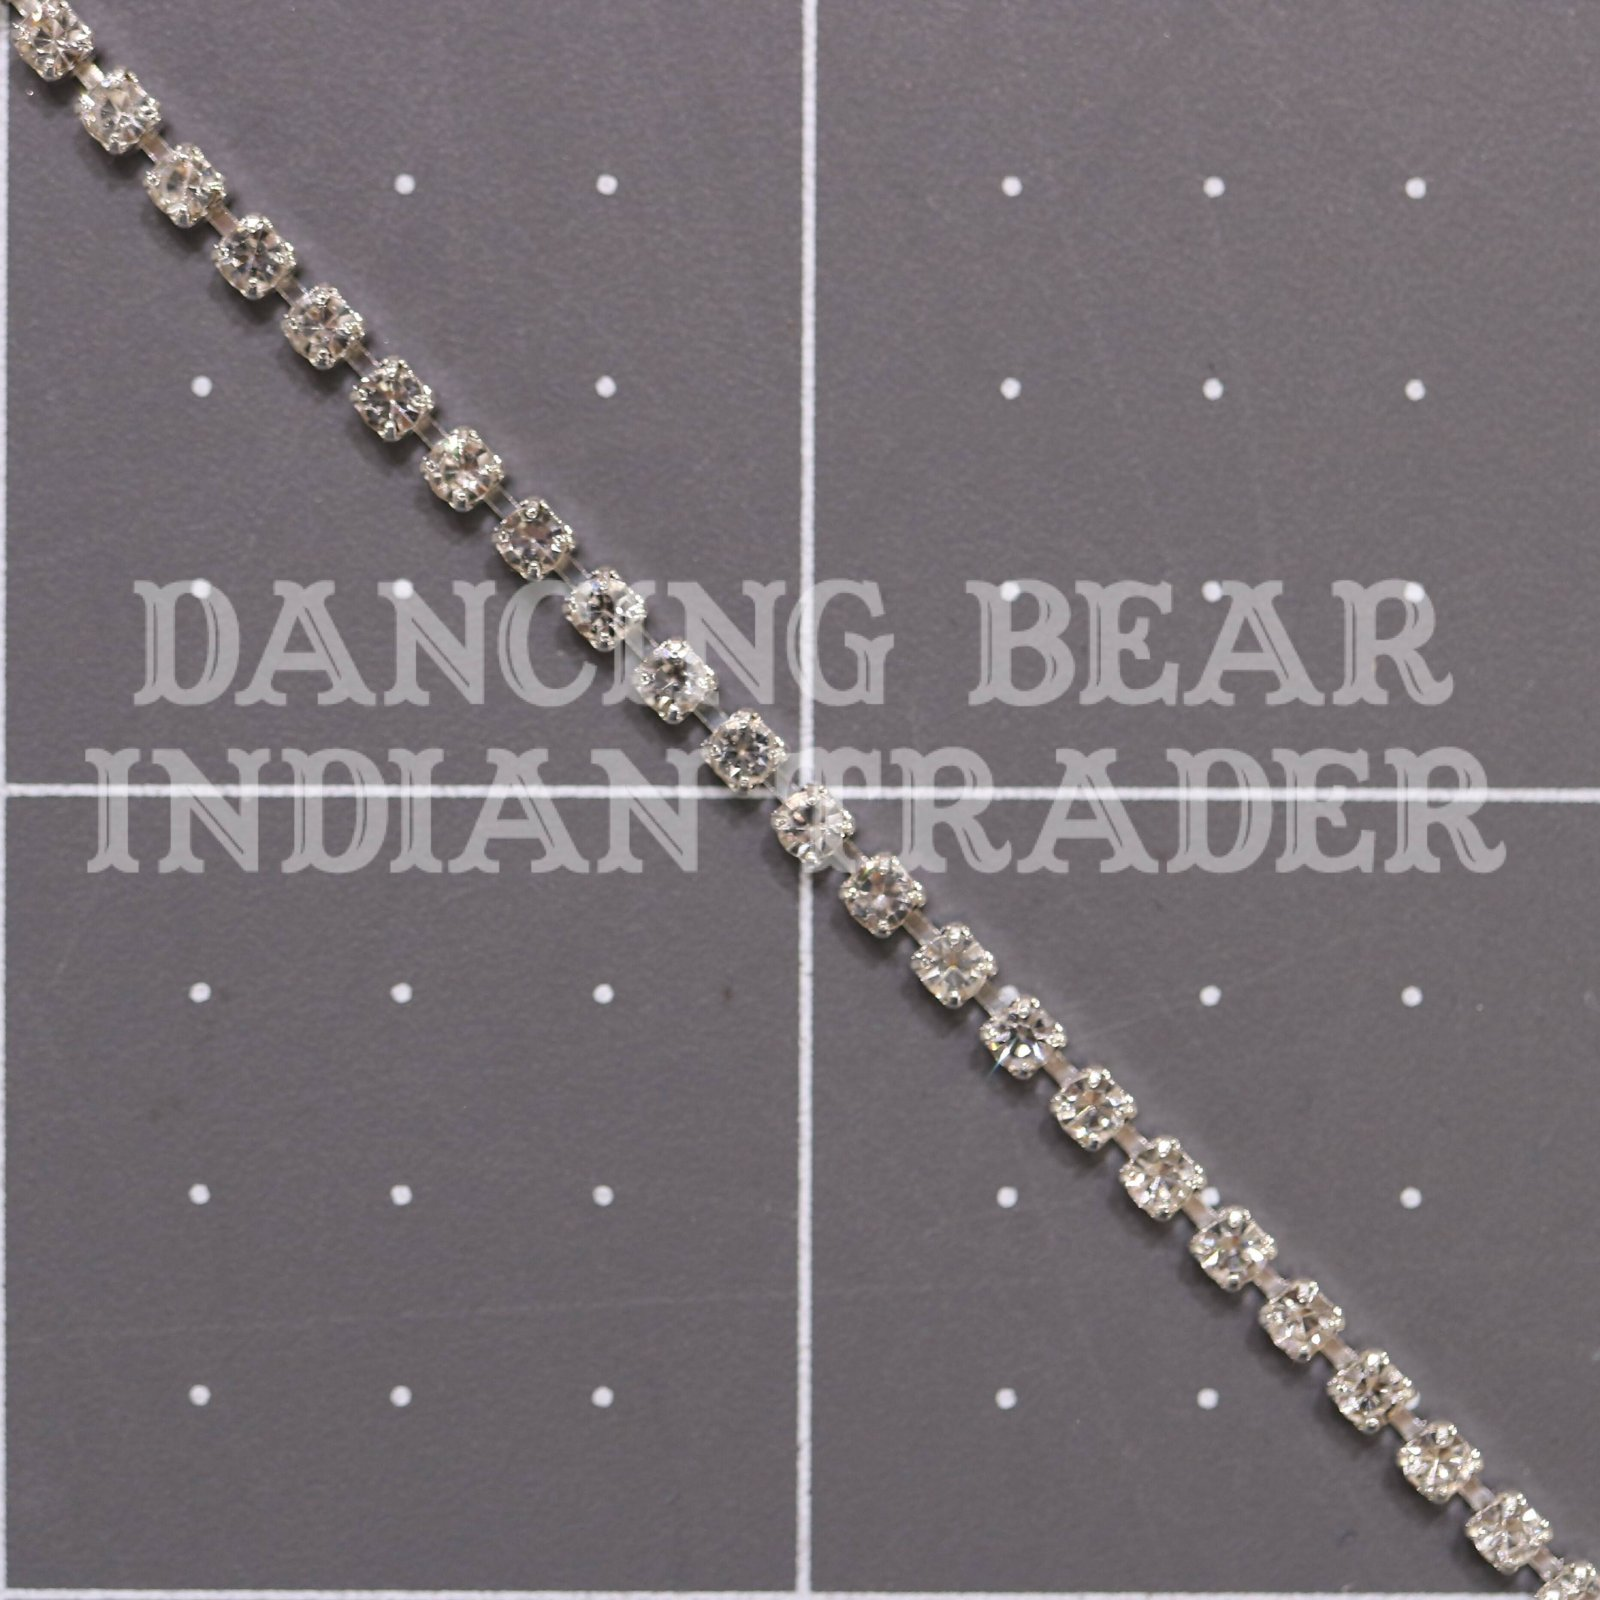 2mm Crystal Silver Cup Chain per foot